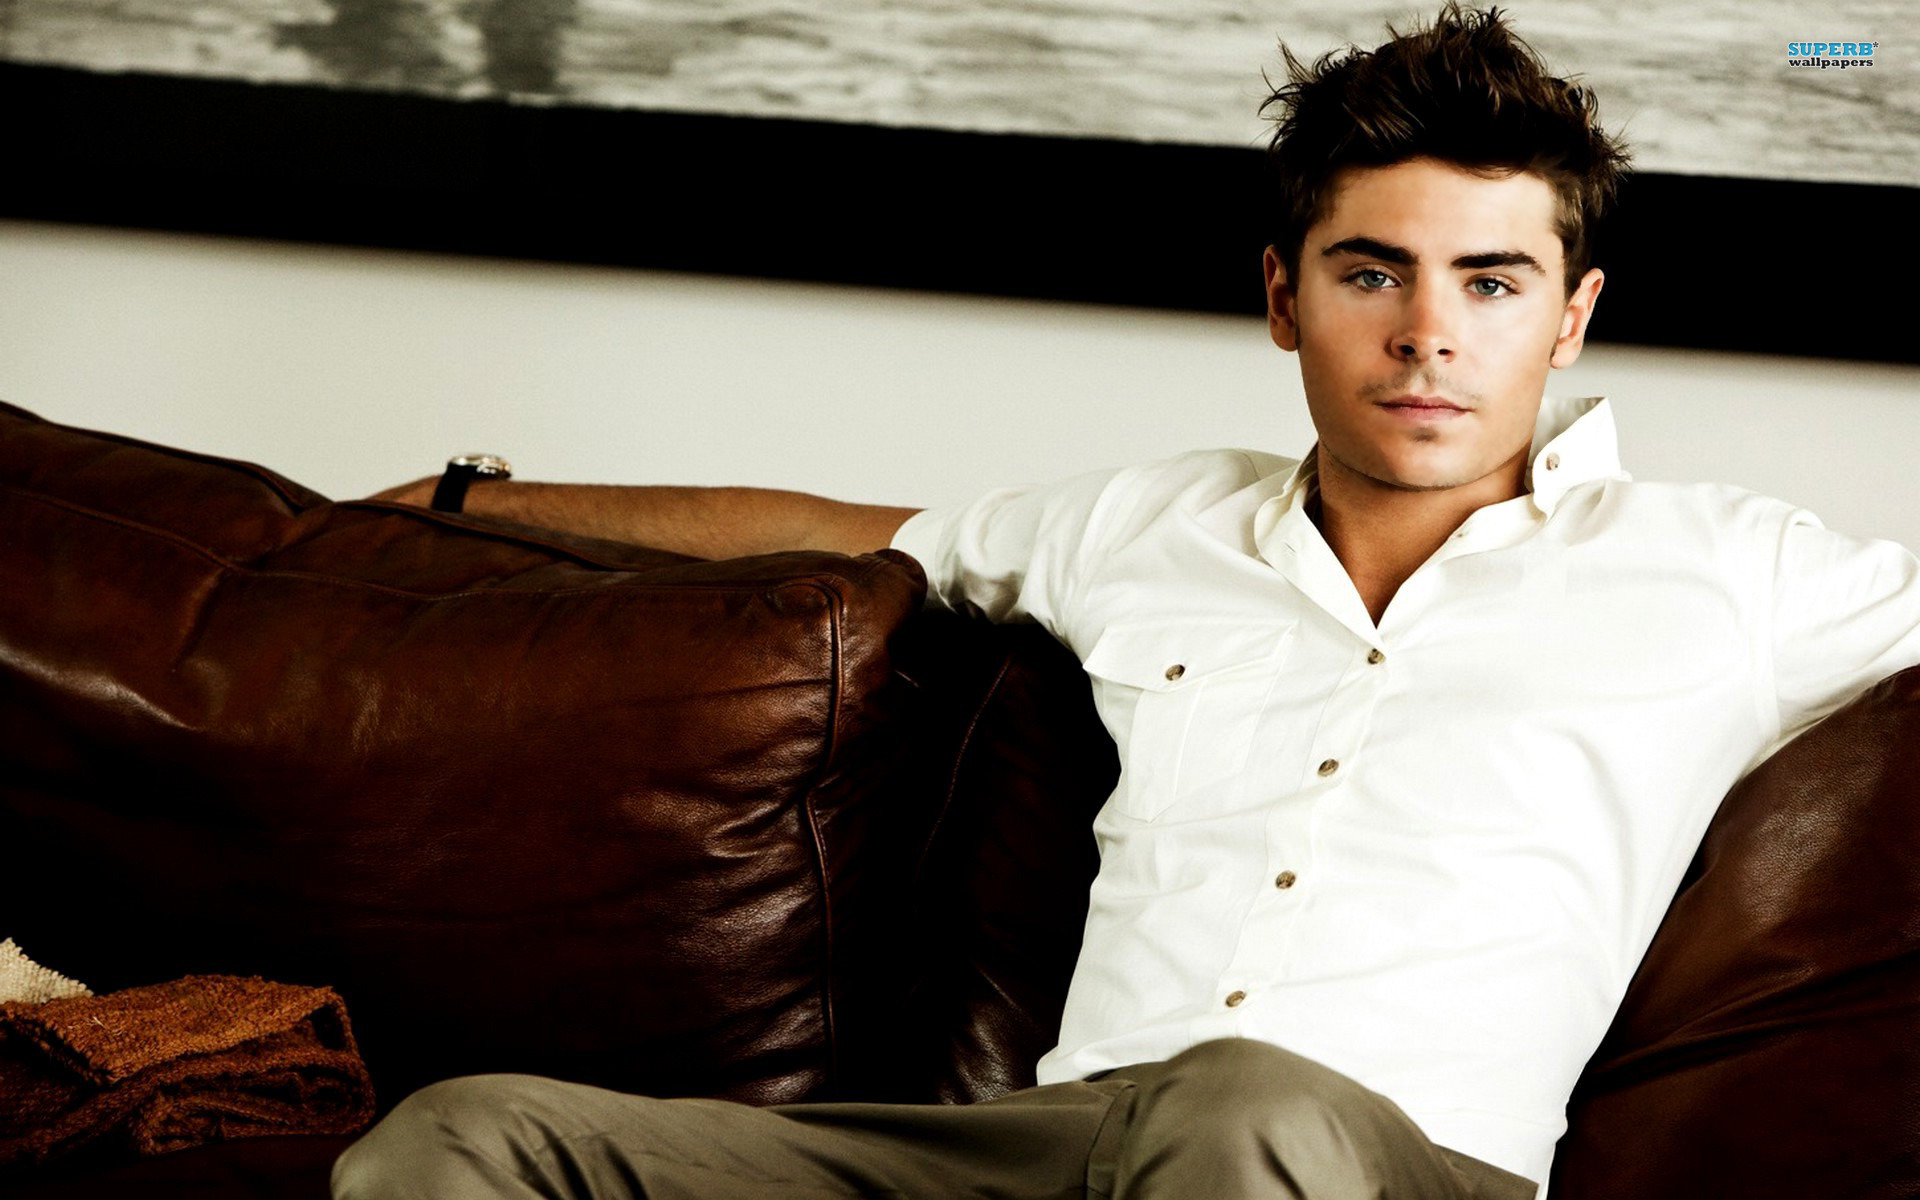 Hollywood Actor Zac Efron wallpapers and images   wallpapers 1920x1200